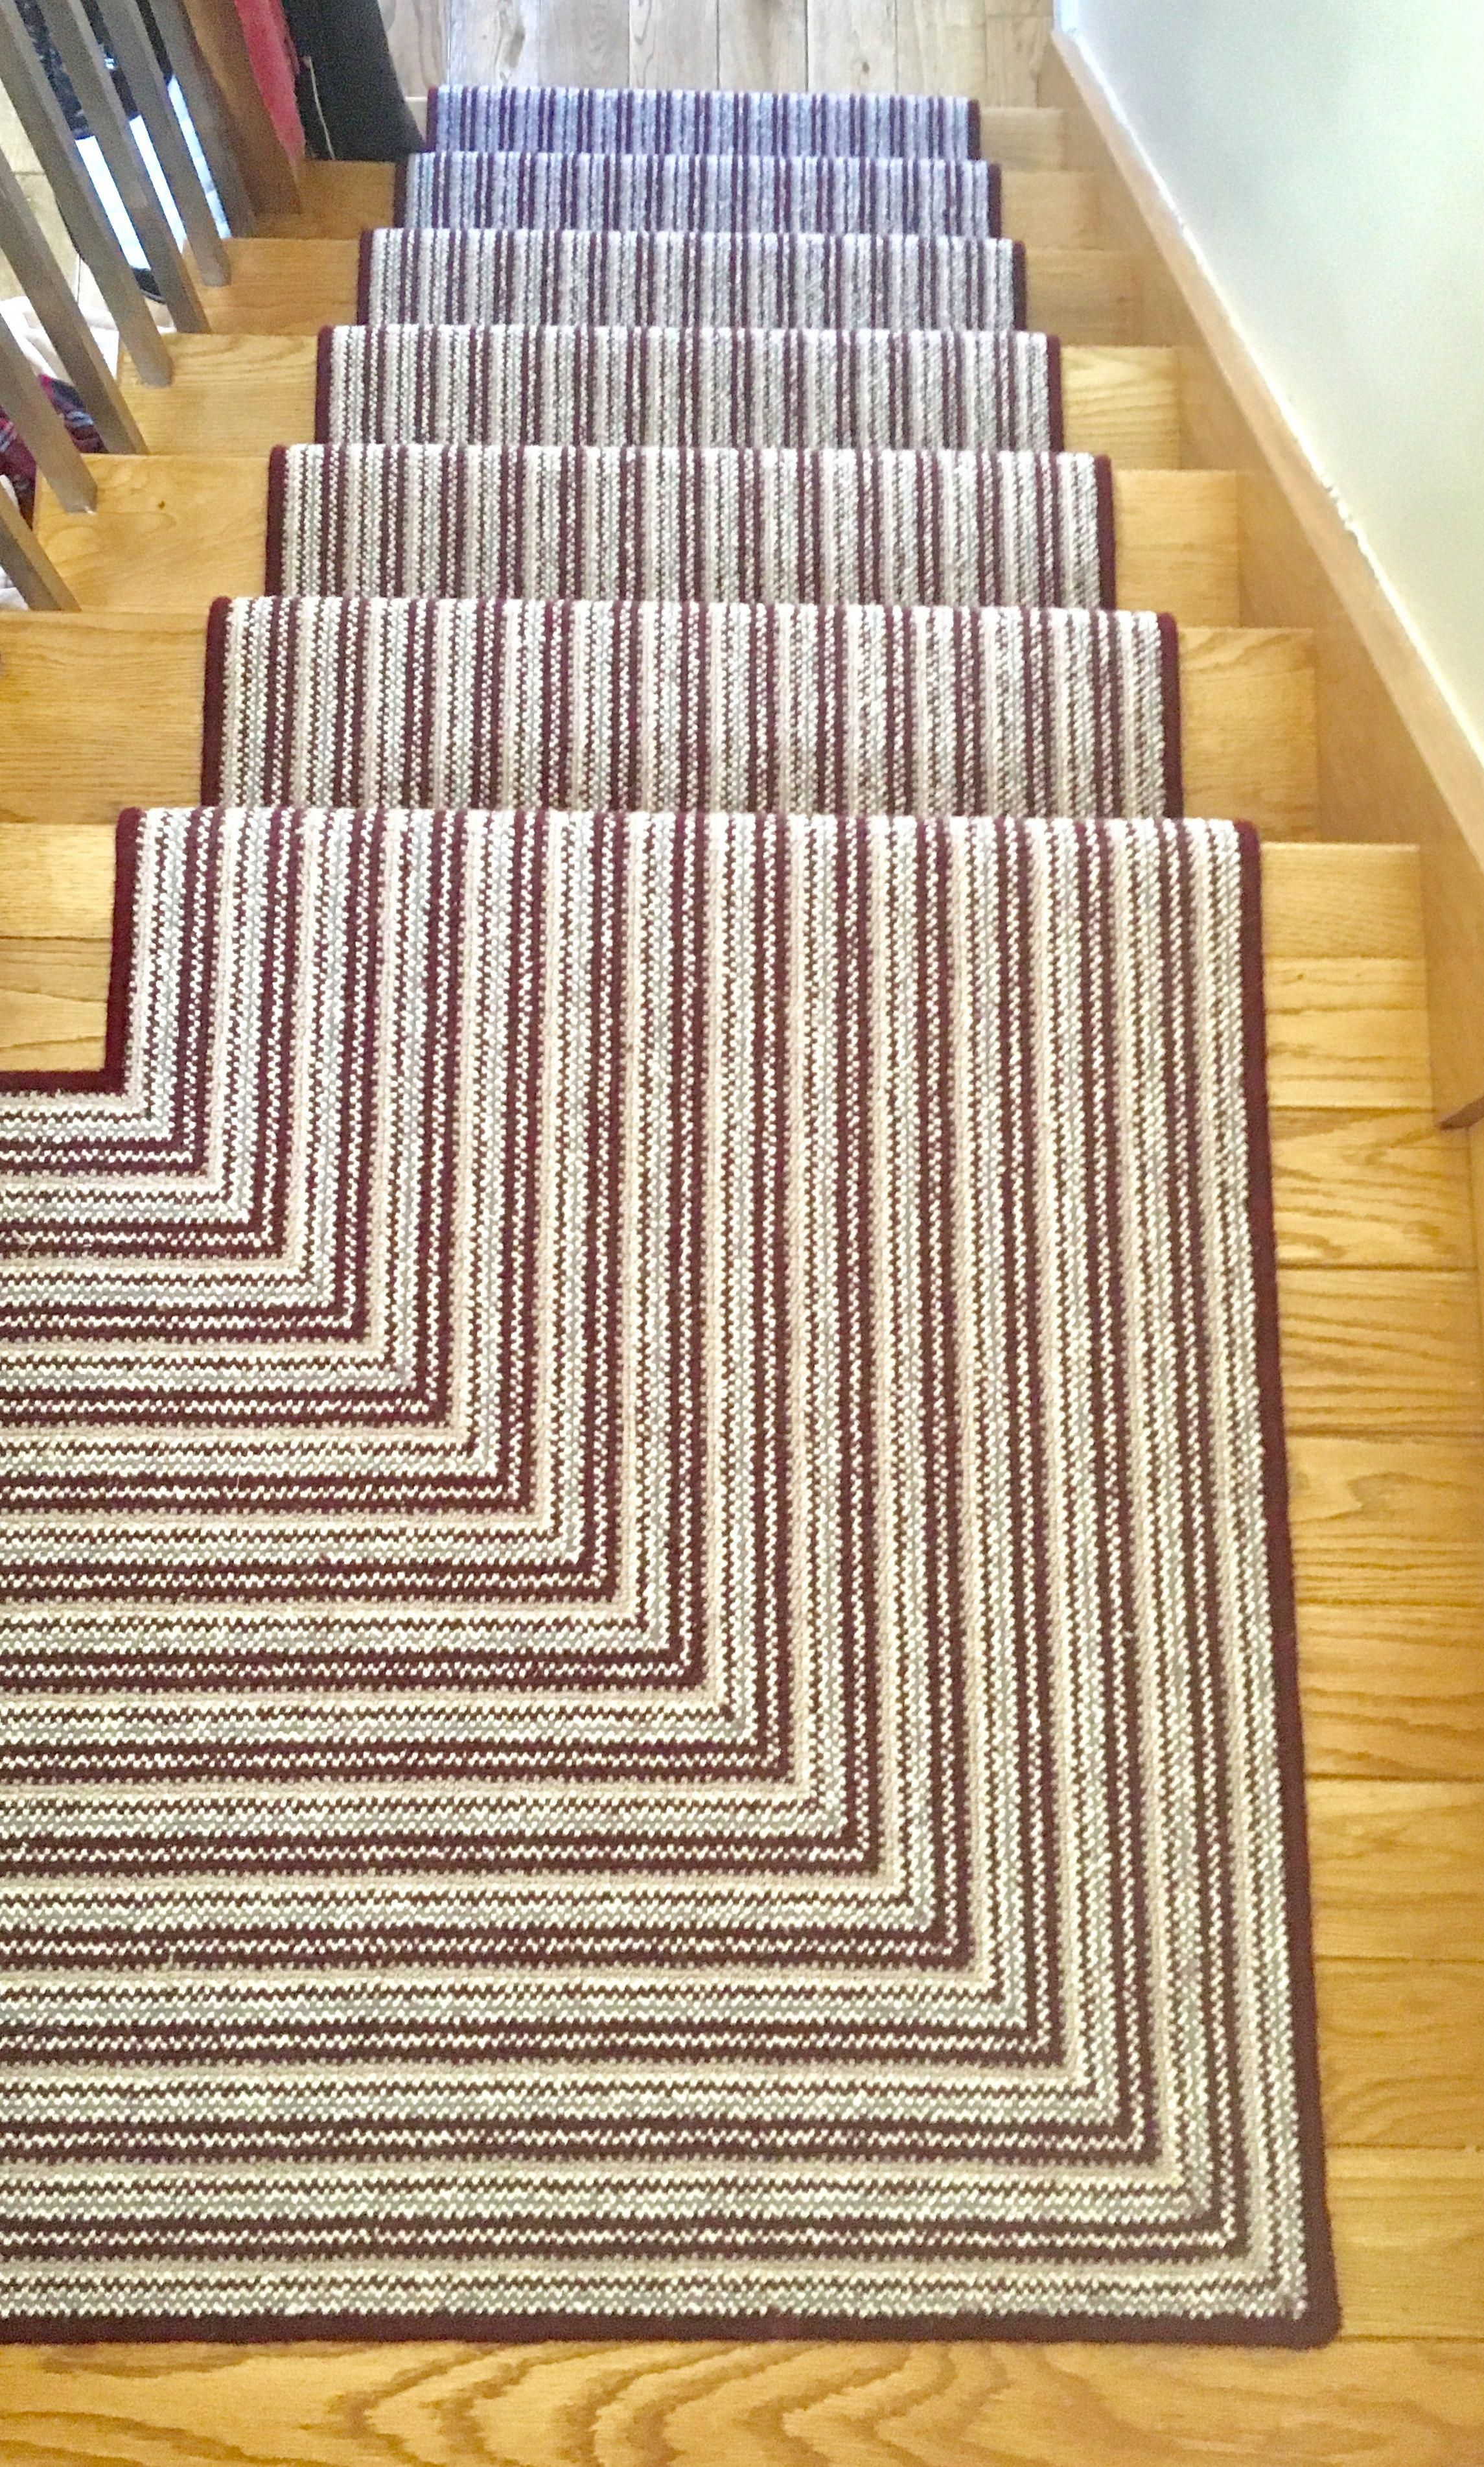 Carpet Runners Sold By The Foot Ebaycheapcarpetrunners